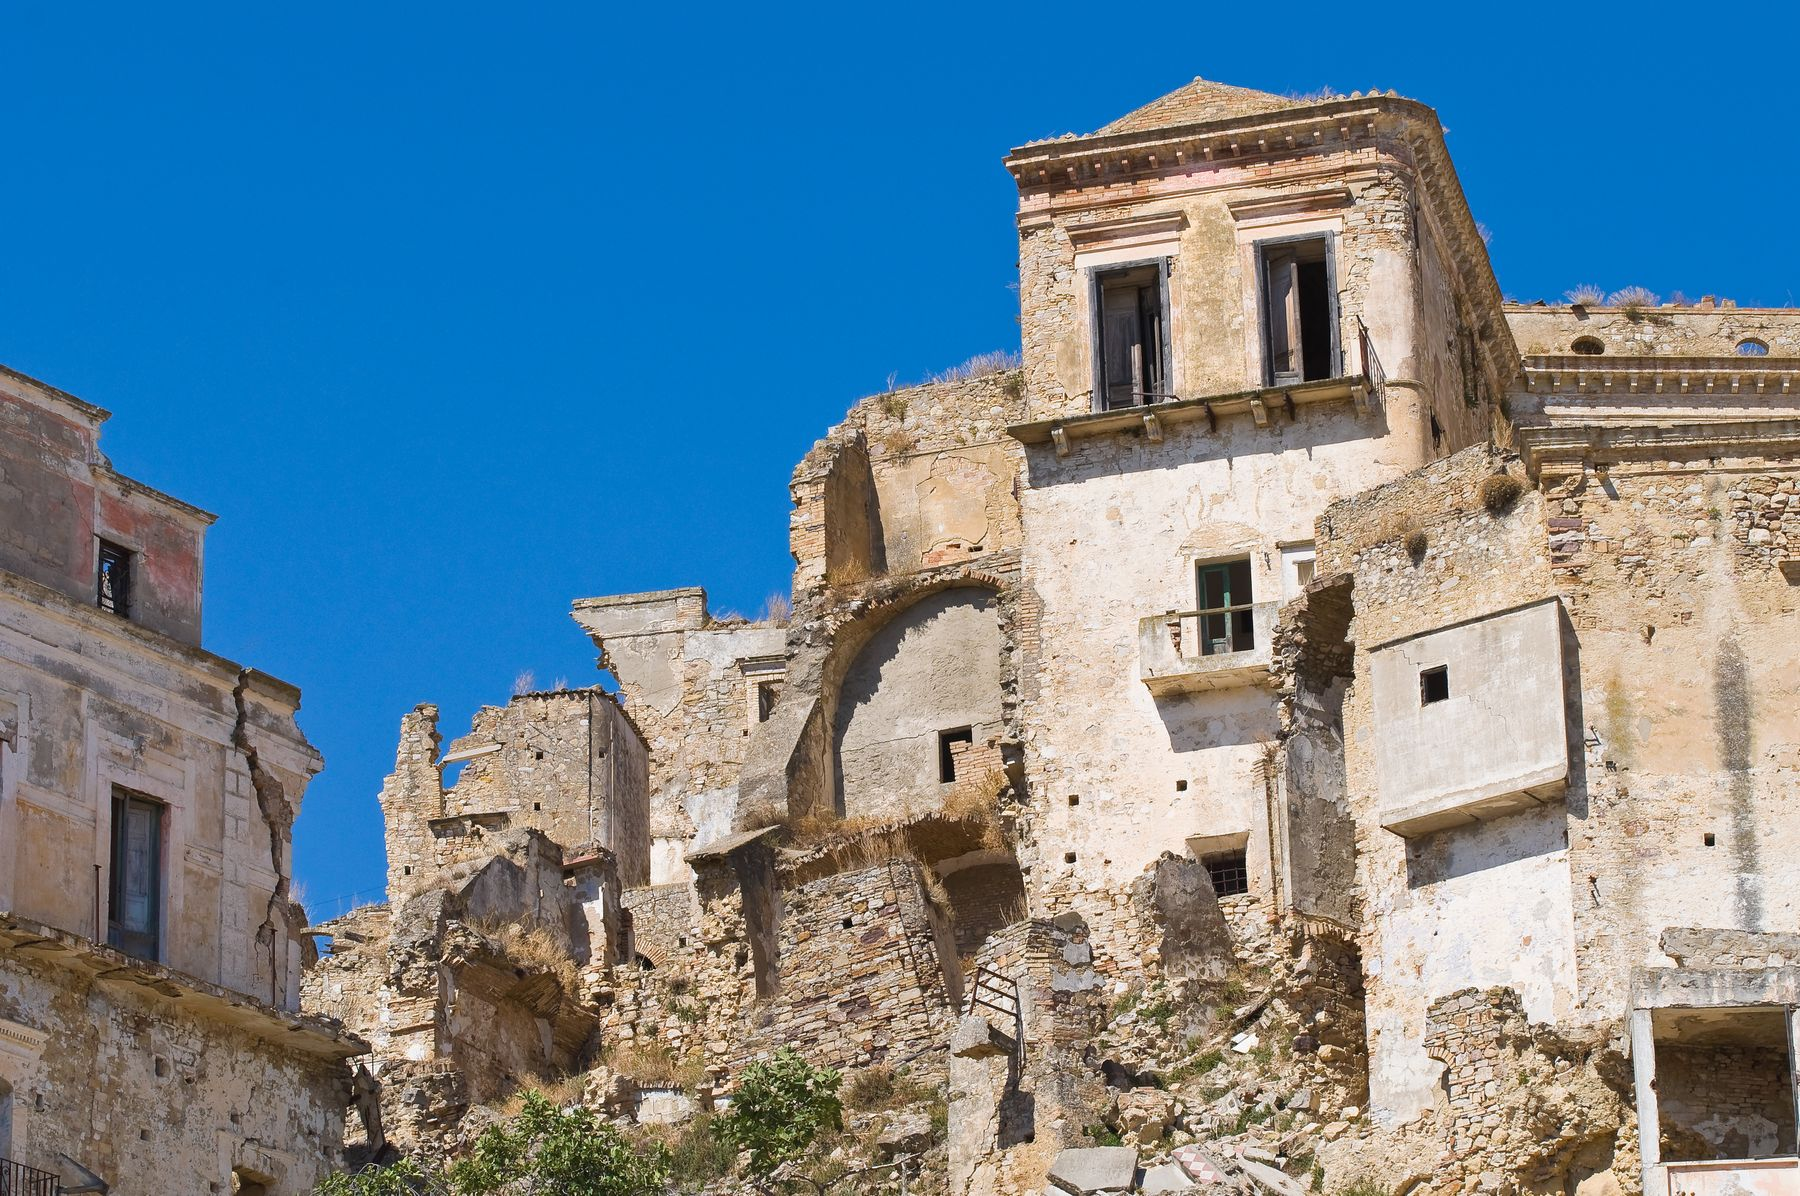 Crumbling buildings set against a blue sky in Craco, Italy.